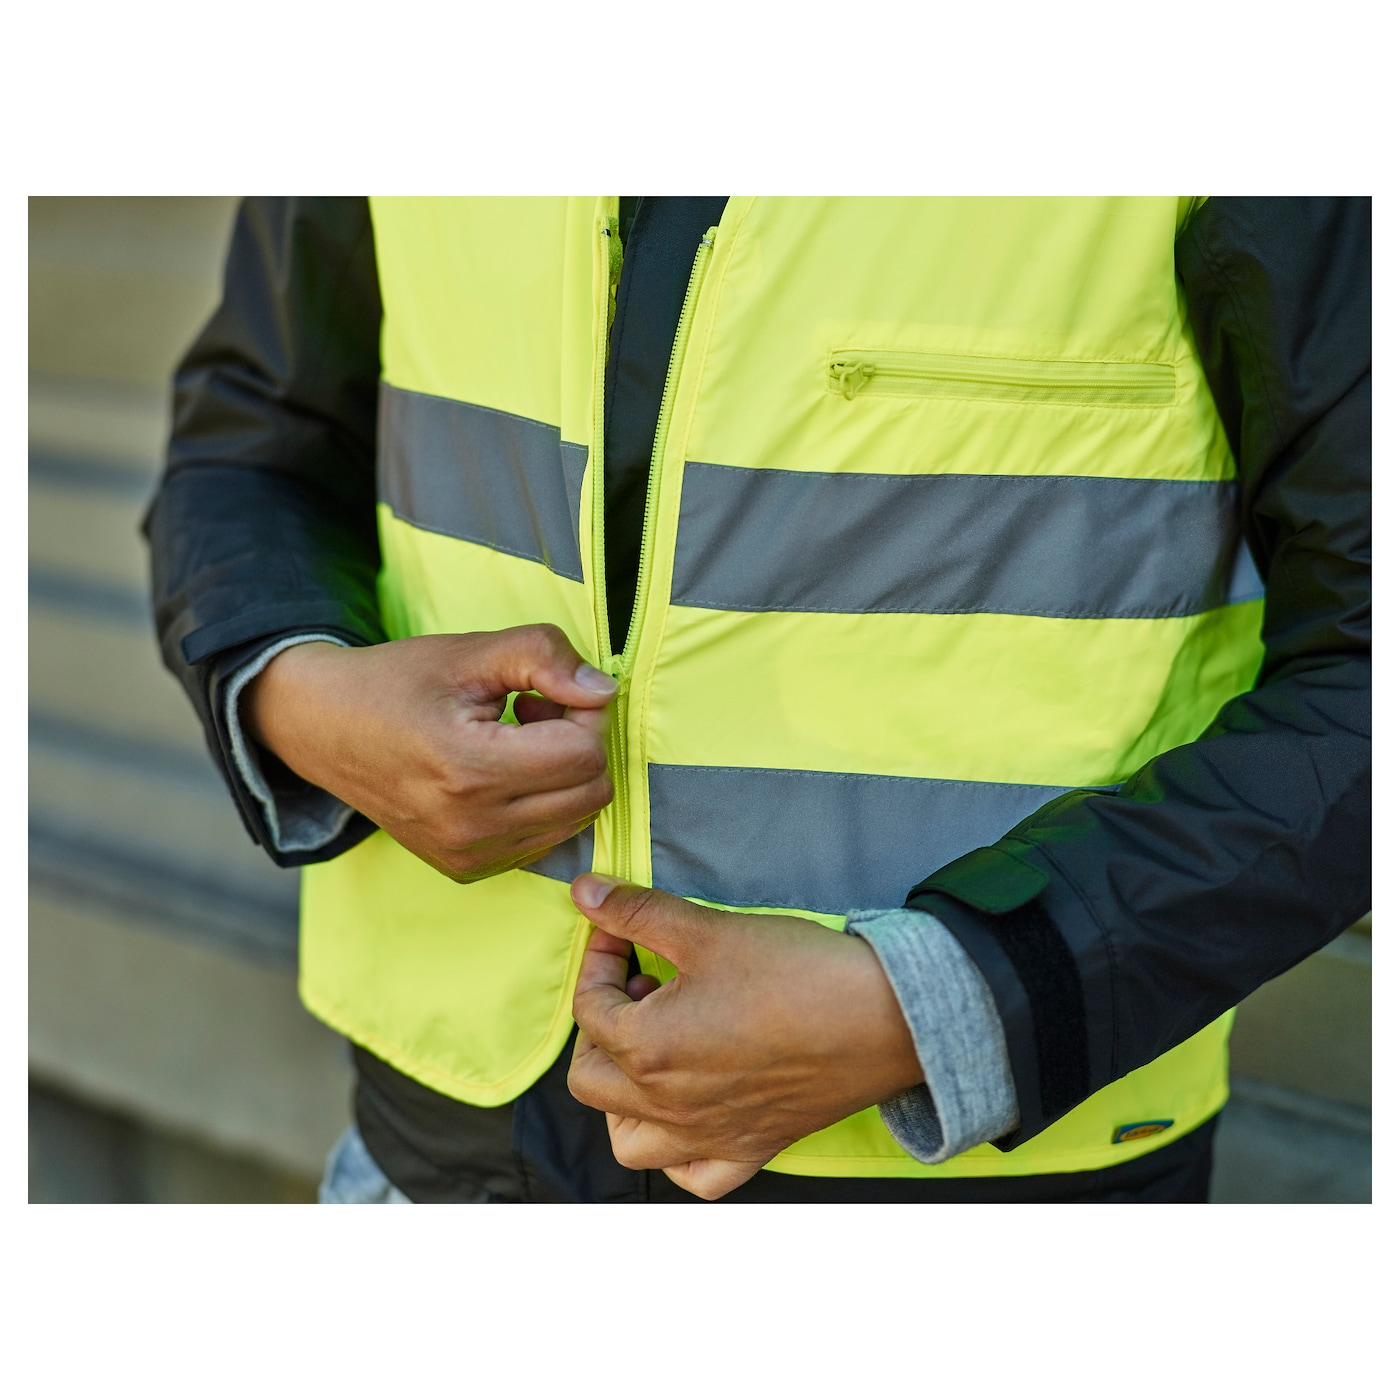 IKEA BESKYDDA reflective vest Folds small enough to fit in your coat pocket or bag.